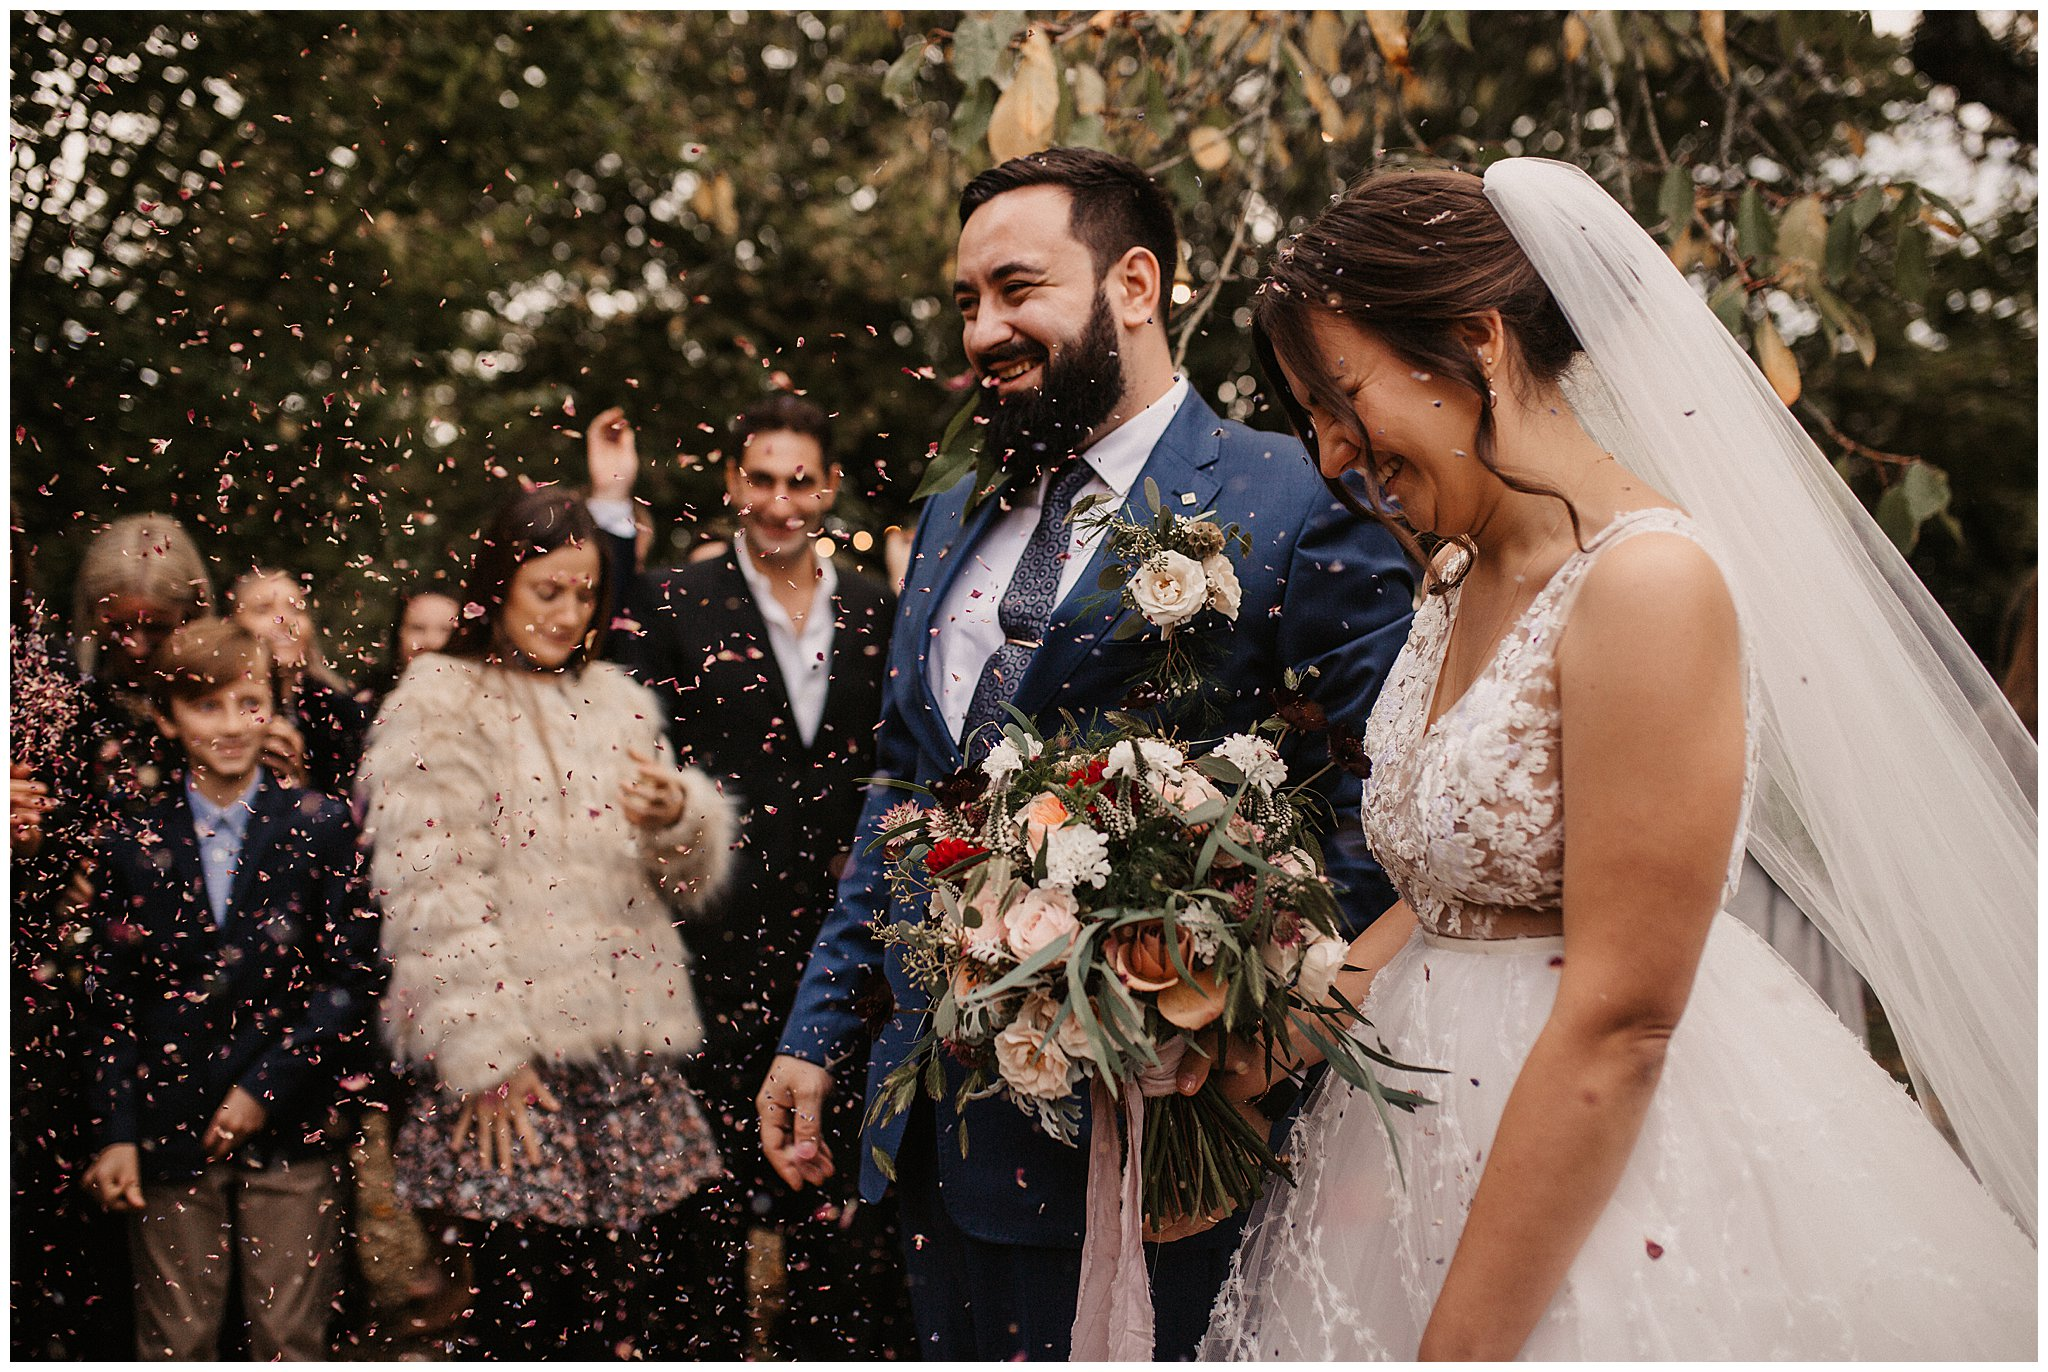 Max & Ksenia Autumnal Wiltshire Wedding-305.jpg